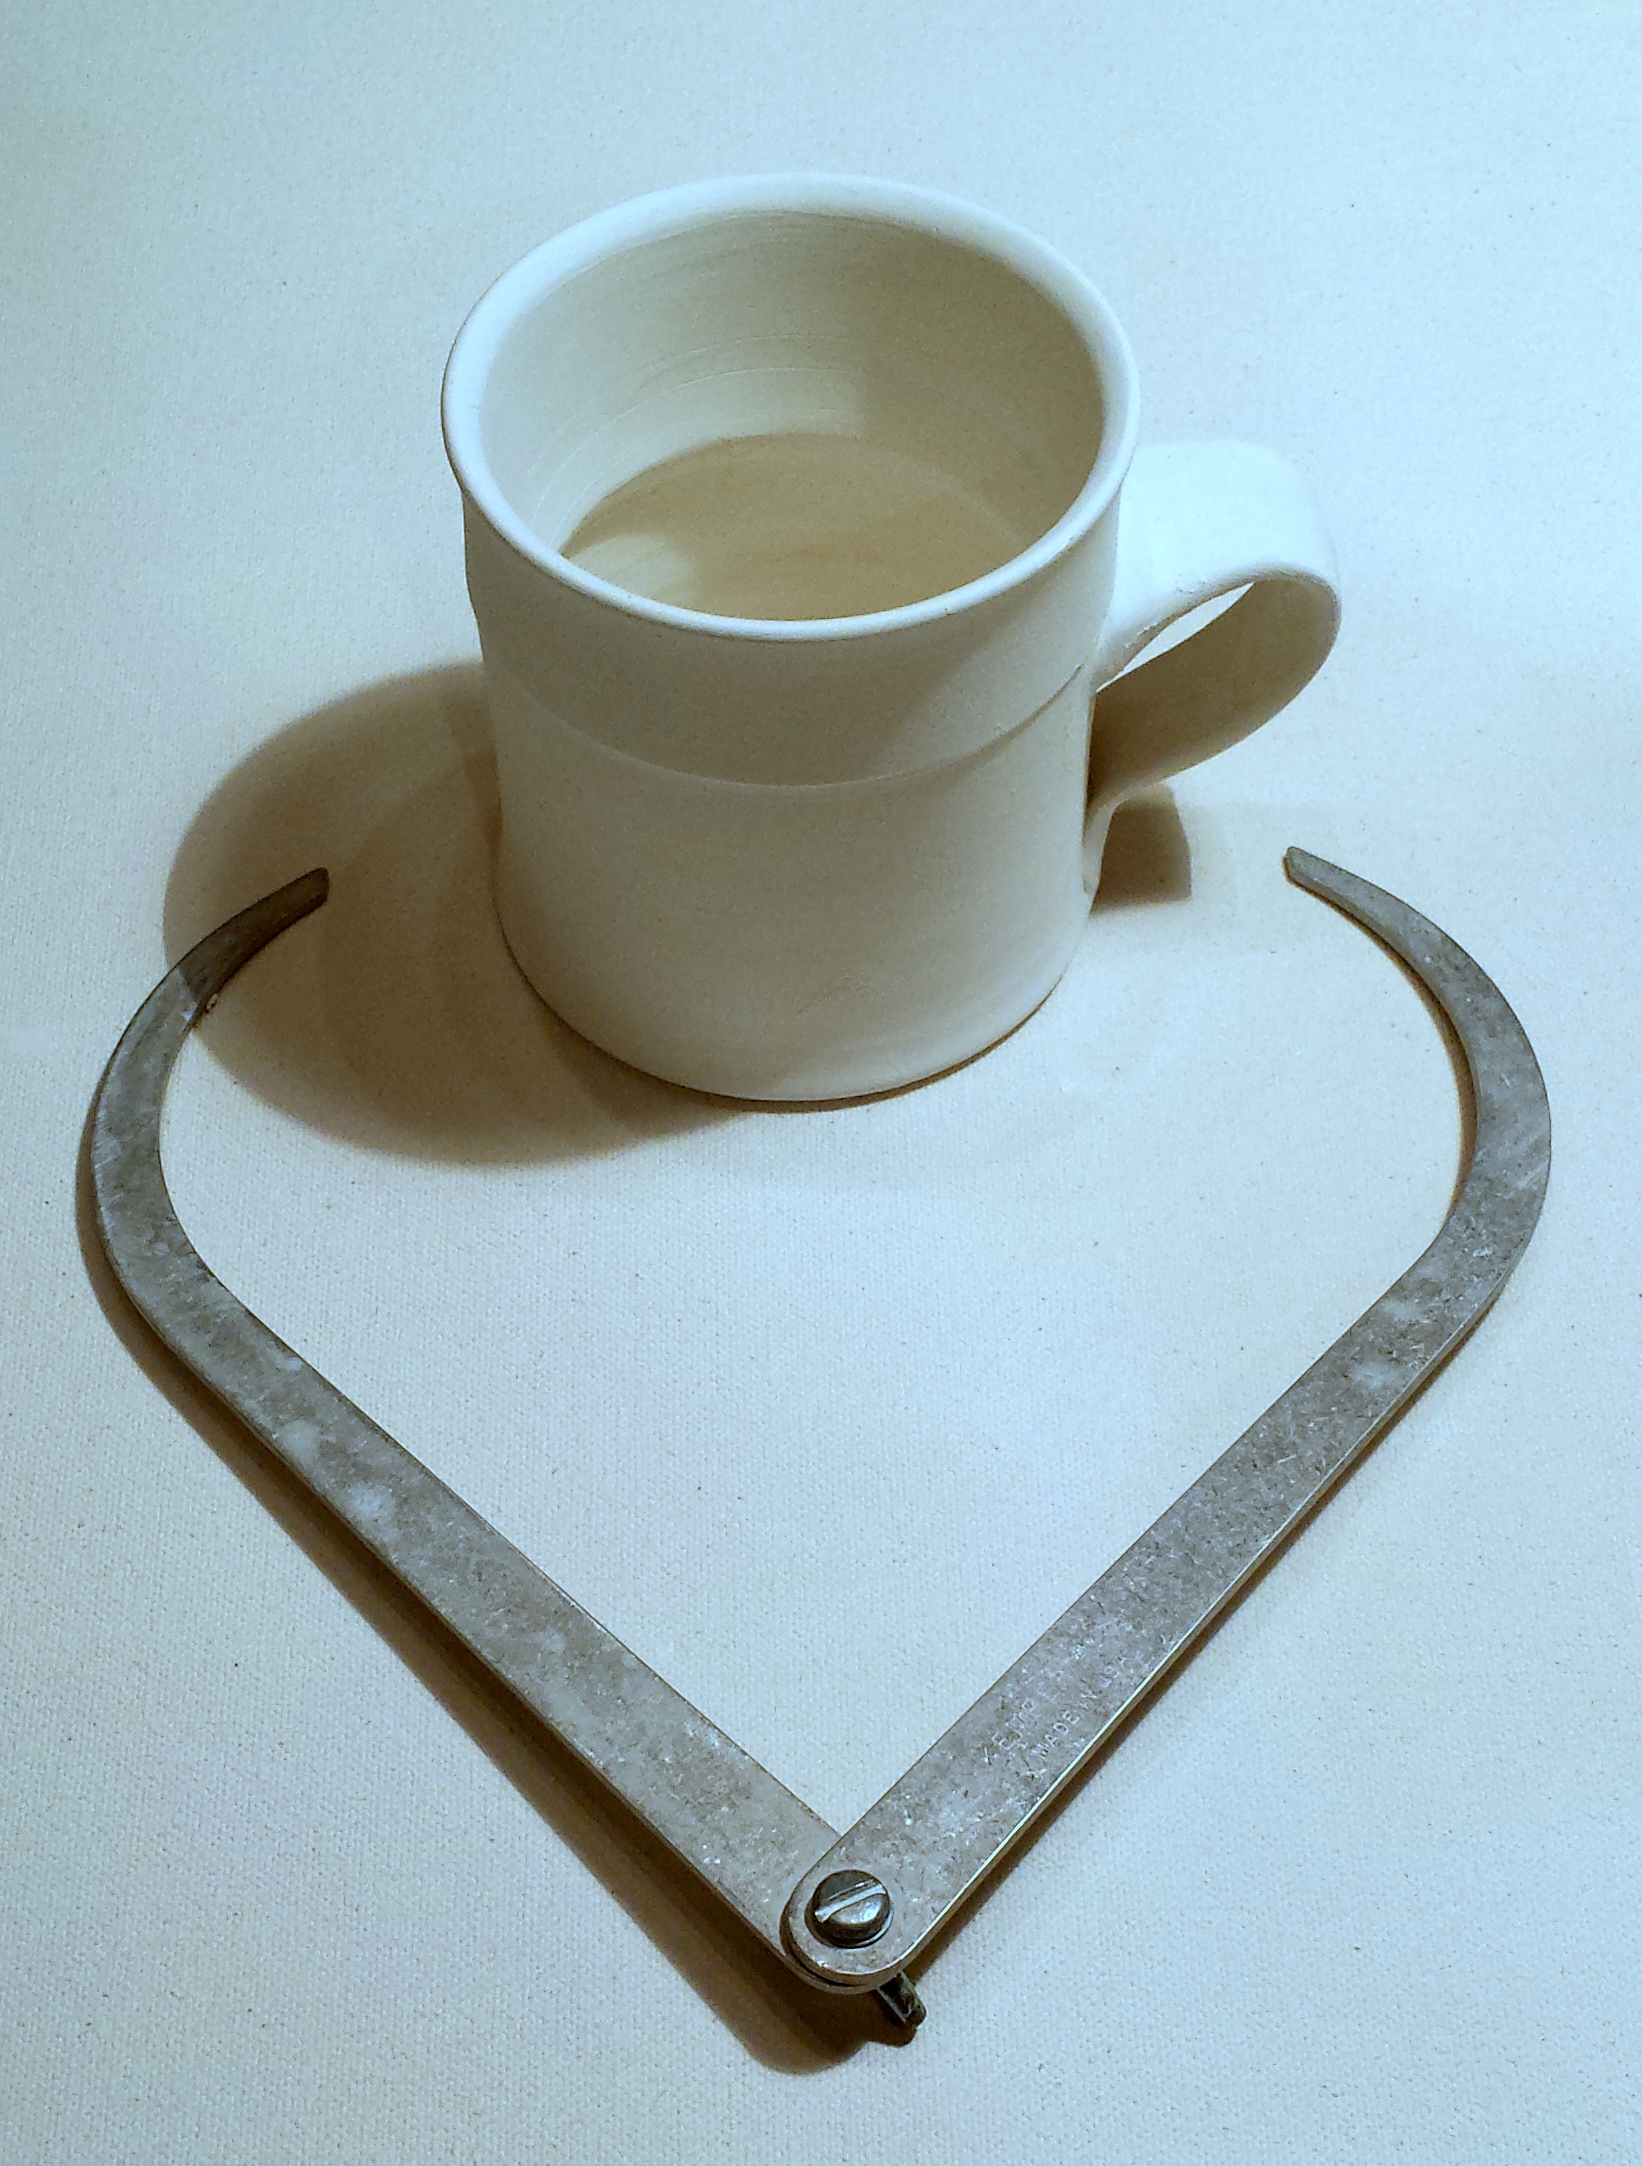 Anne studio coffee cup and measuring tool